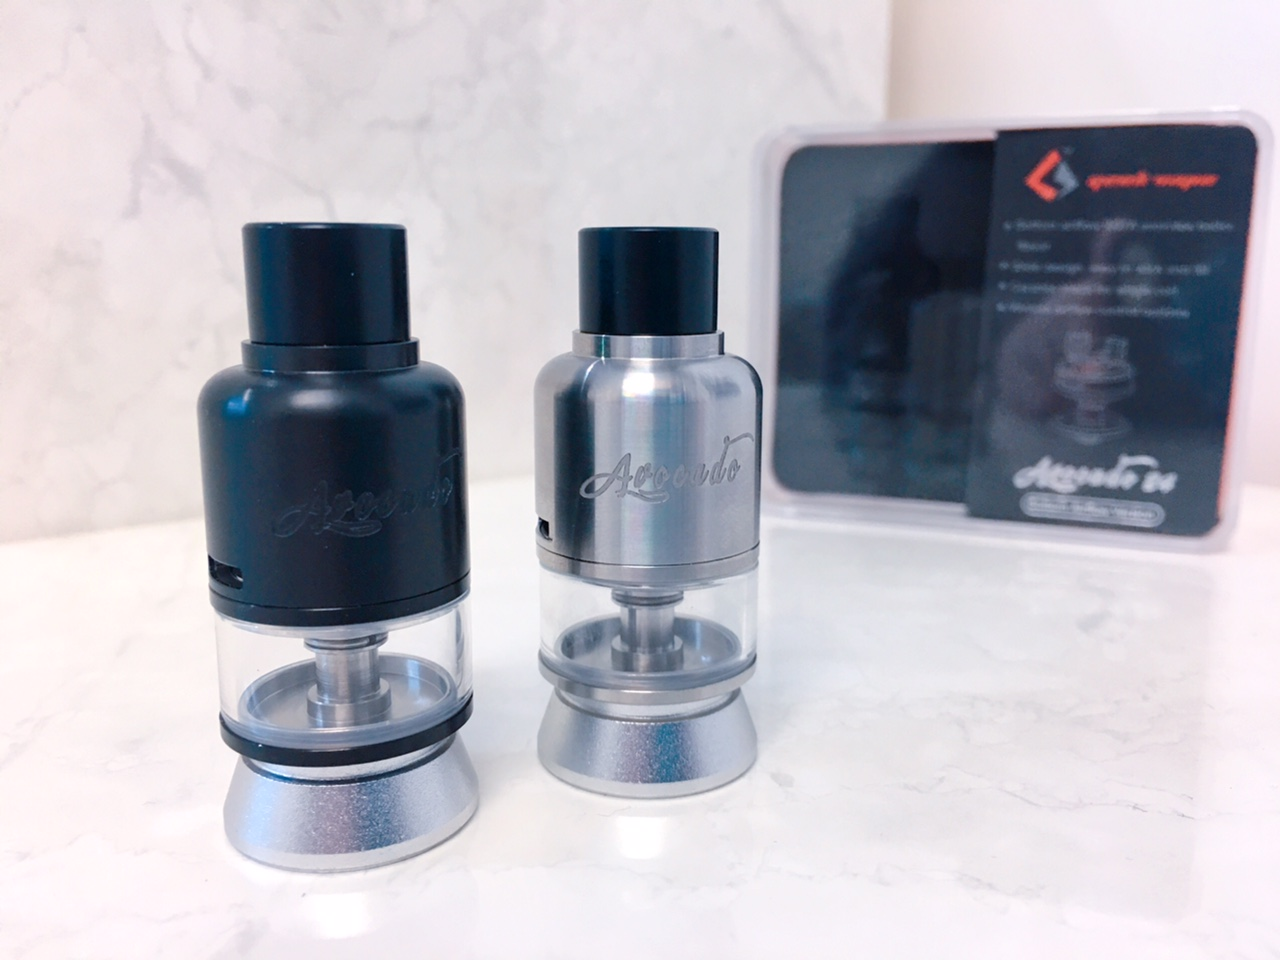 AVOCADO 24 RDTA bottom airflow ver.